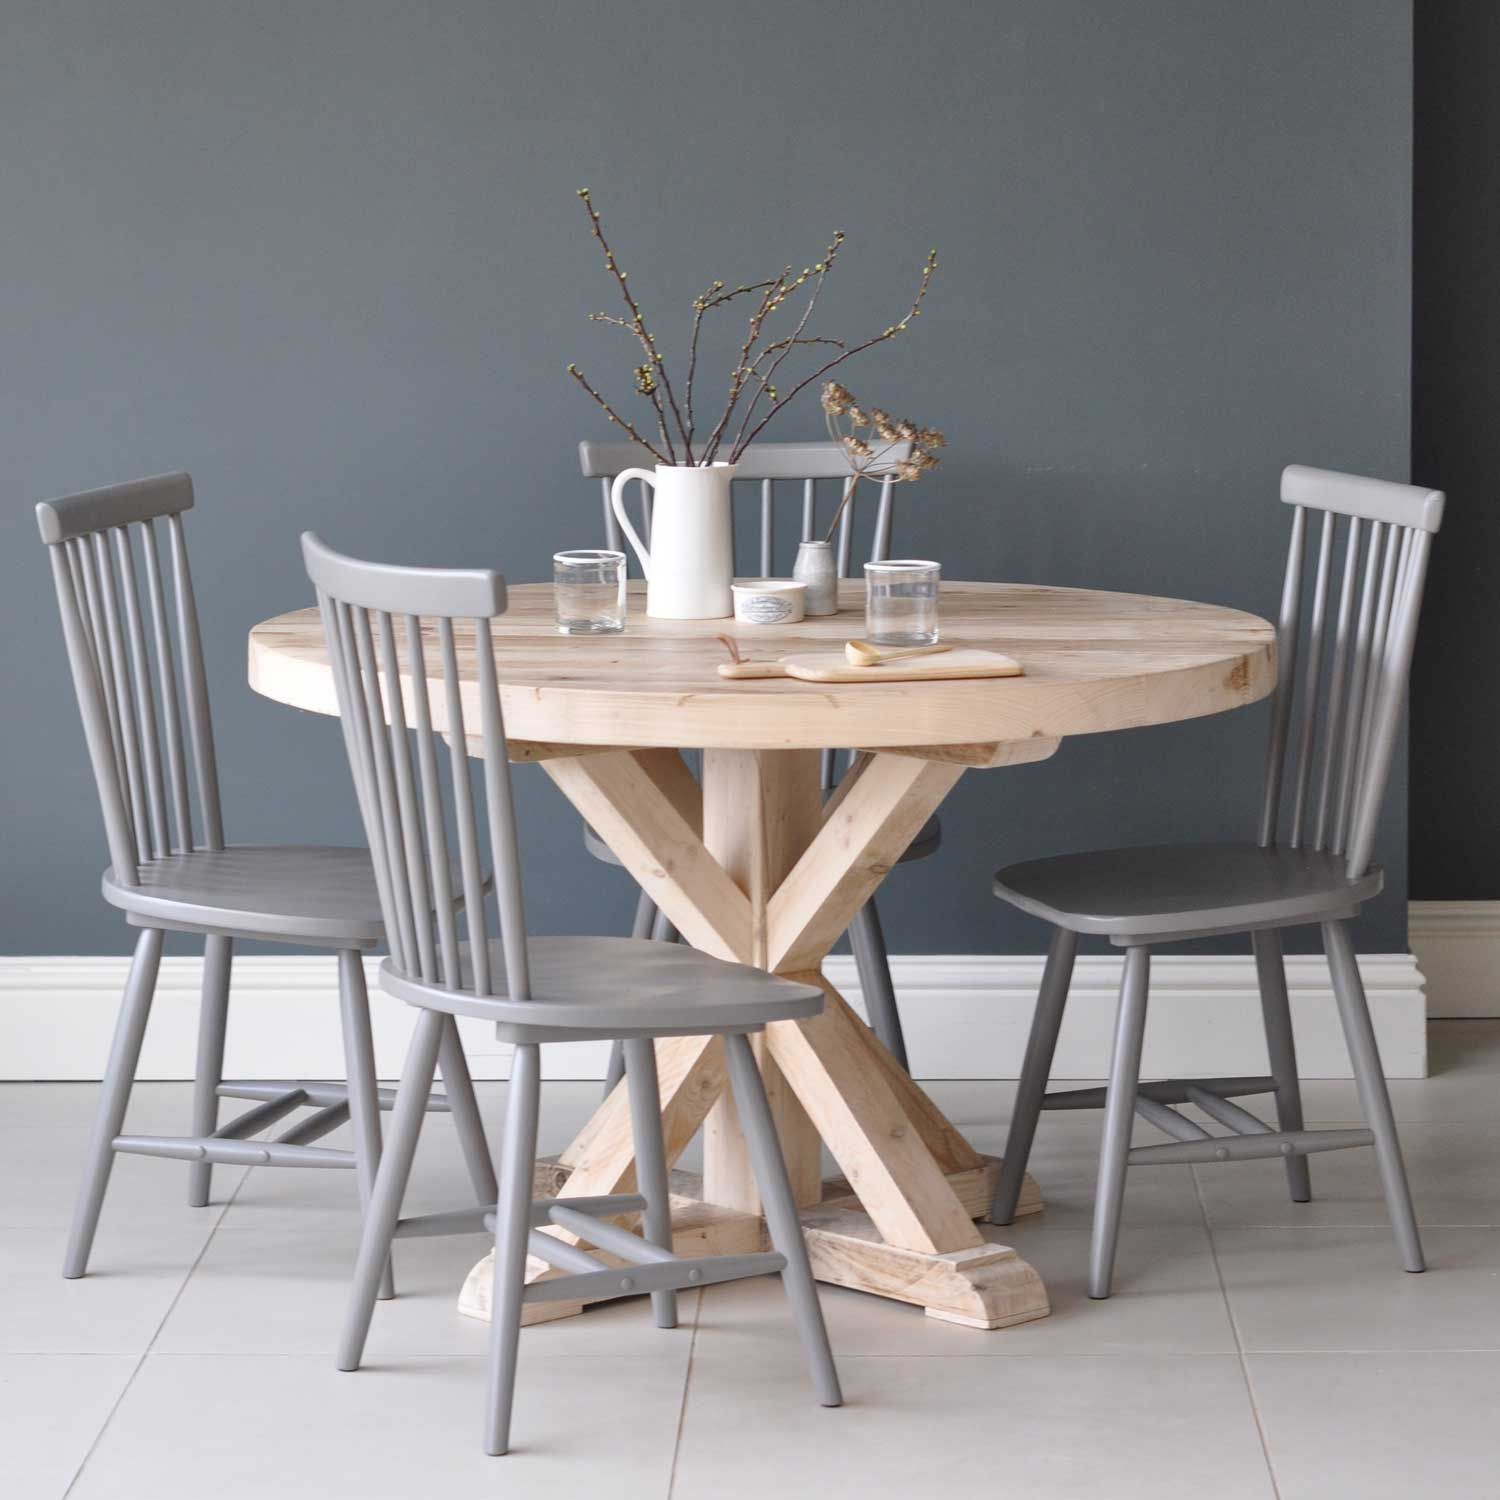 Circular Reclaimed Wood Round Dining Table | Crafting | Pinterest